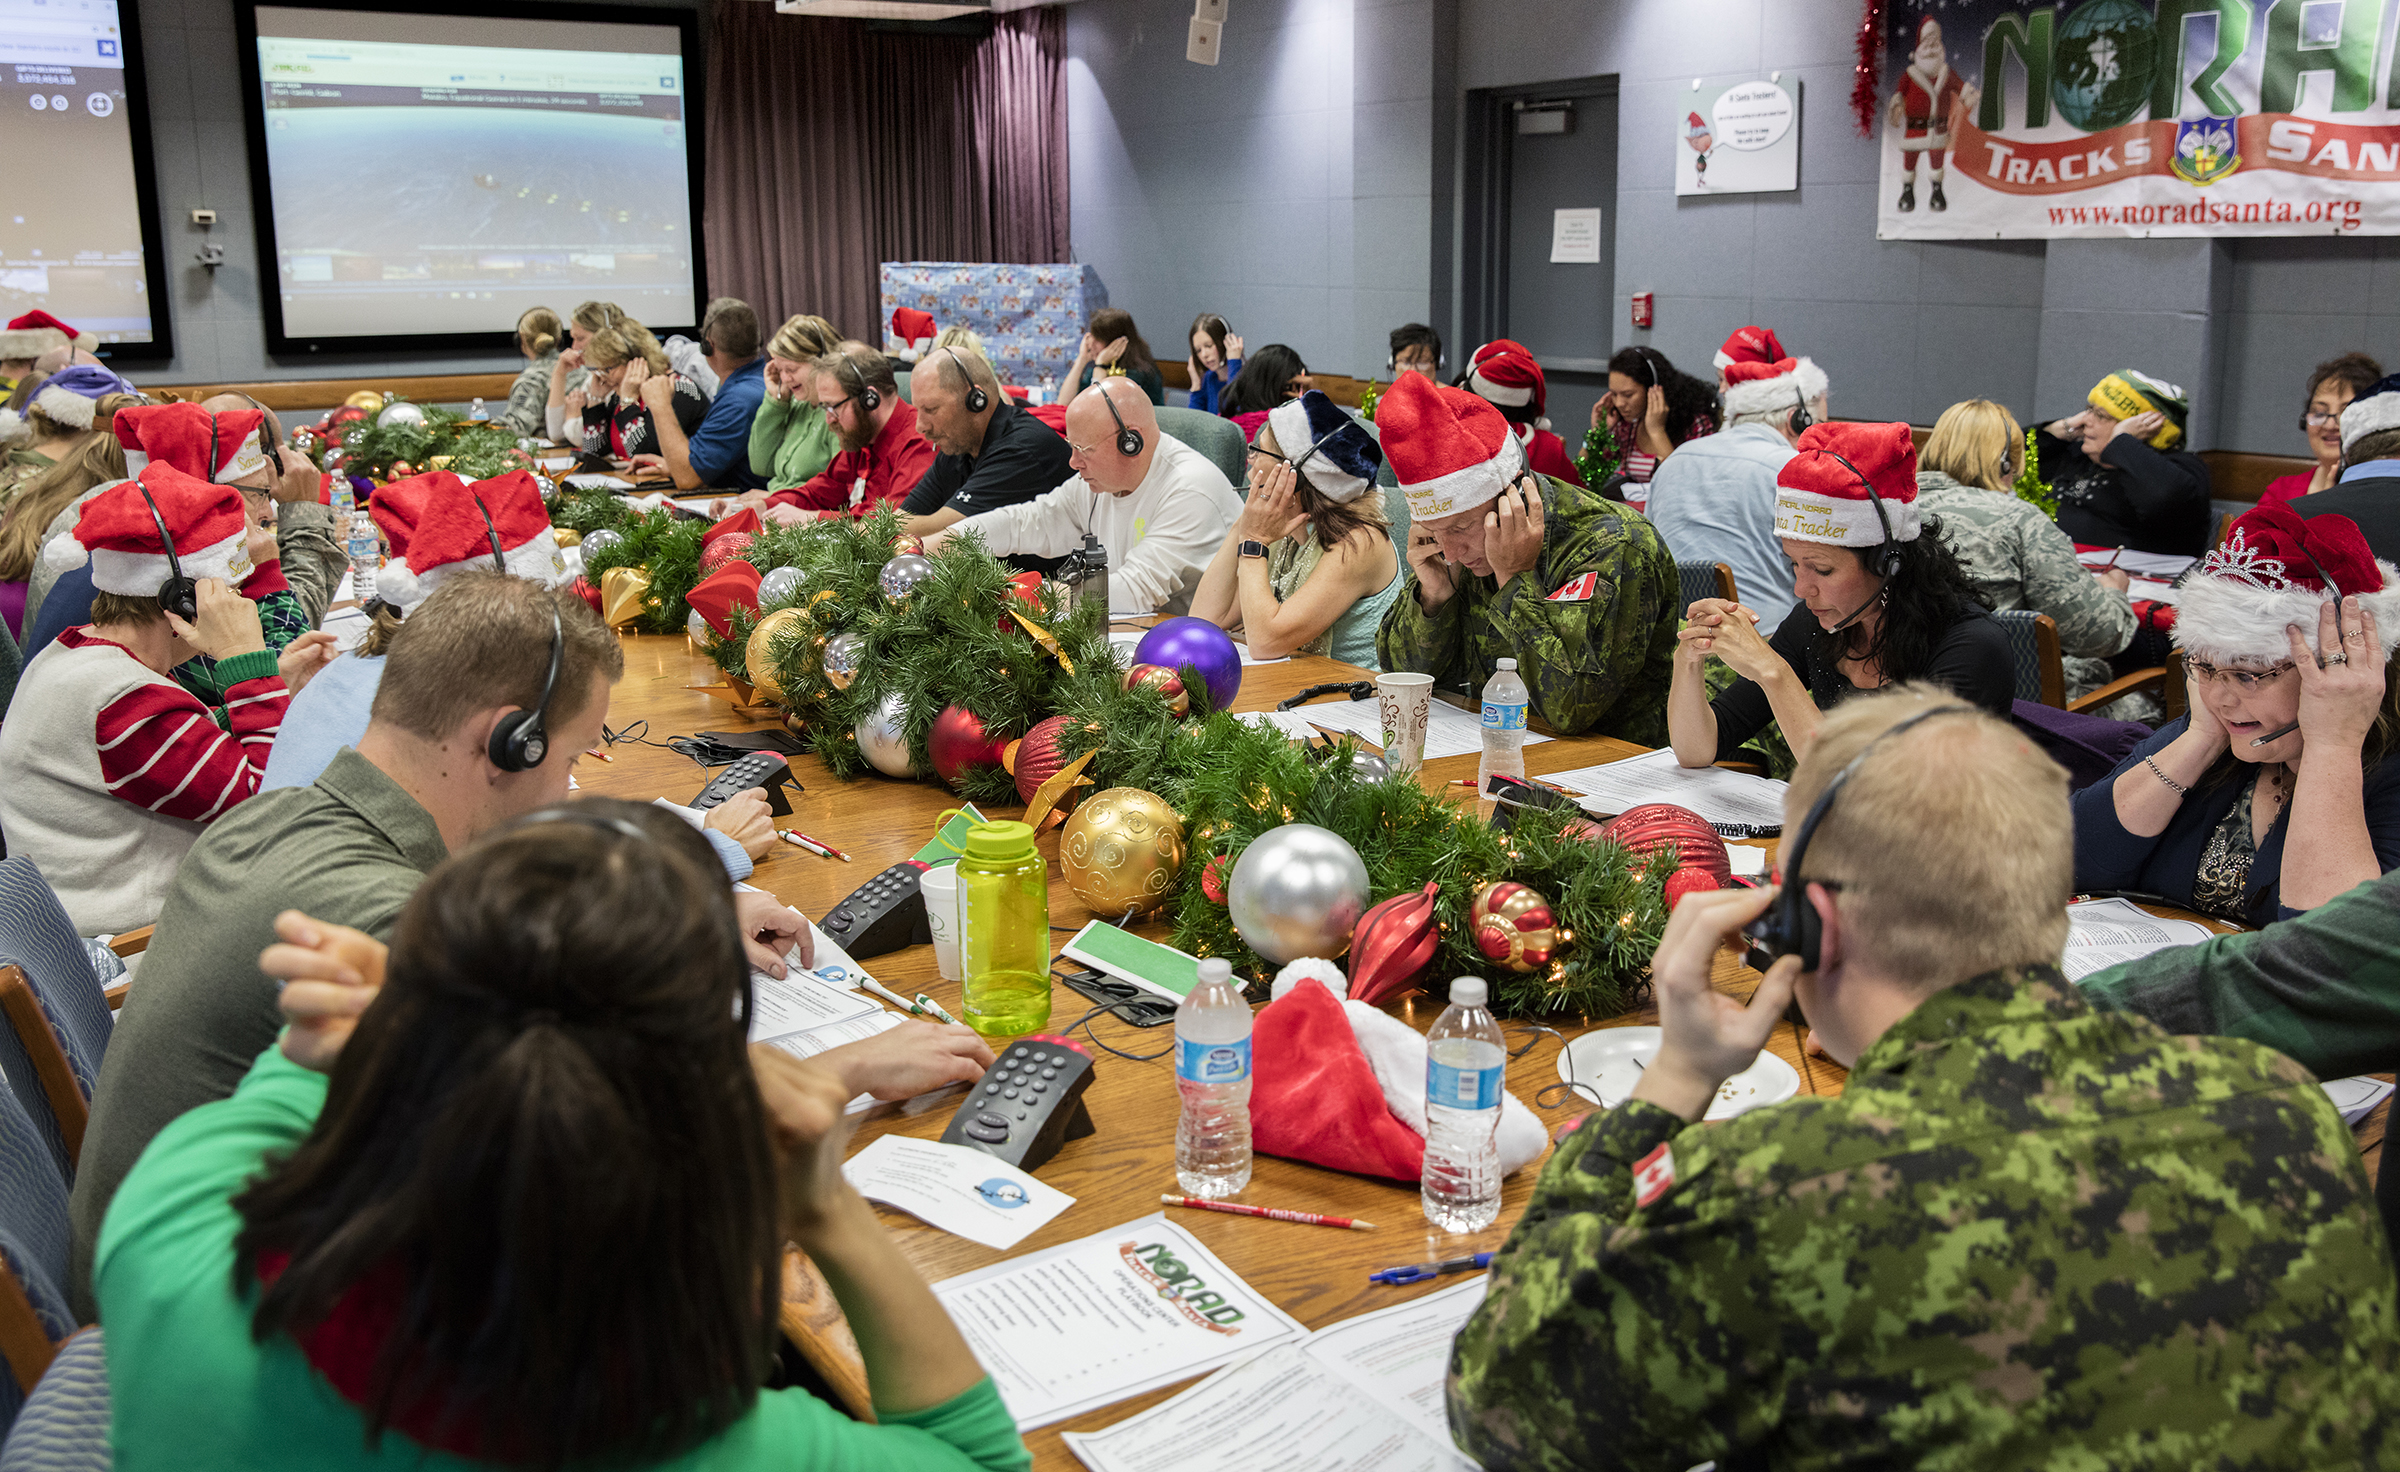 In a large room, people wearing military uniforms and civilian clothing, sit around large tables covered in holiday decorations and talk on telephones. Many are wearing Santa Claus-type hats.